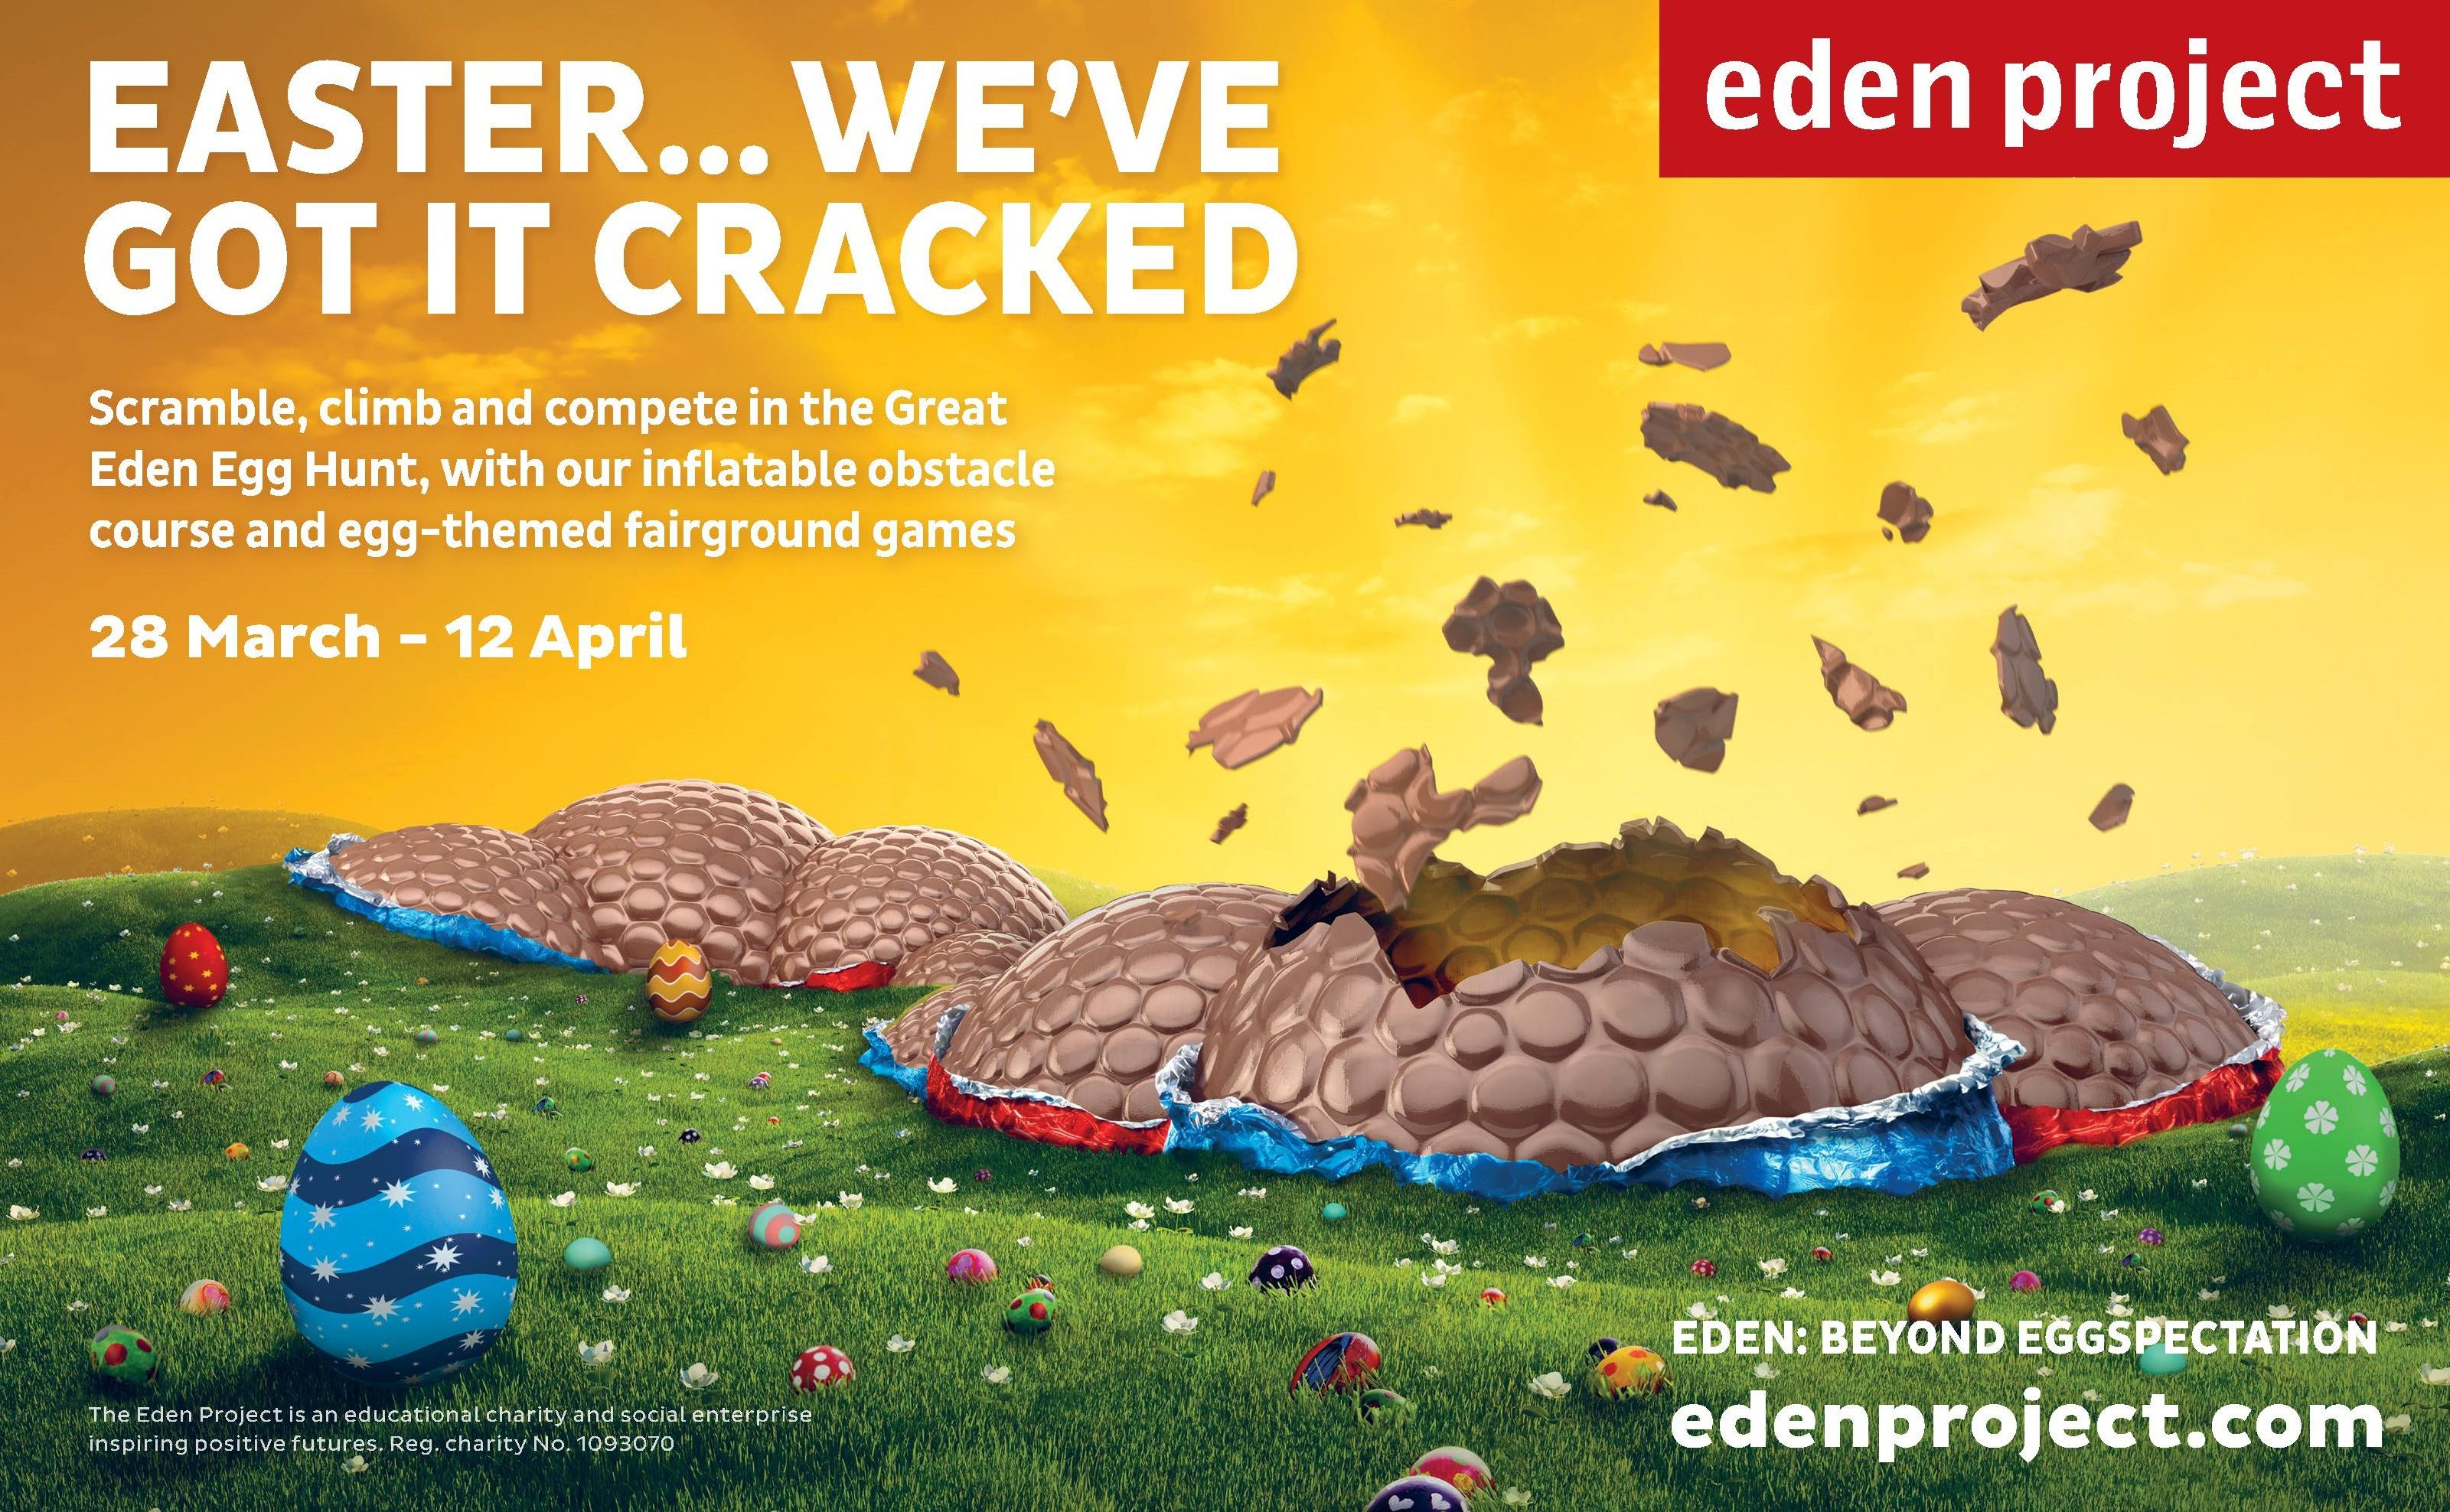 Eden Project Easter event